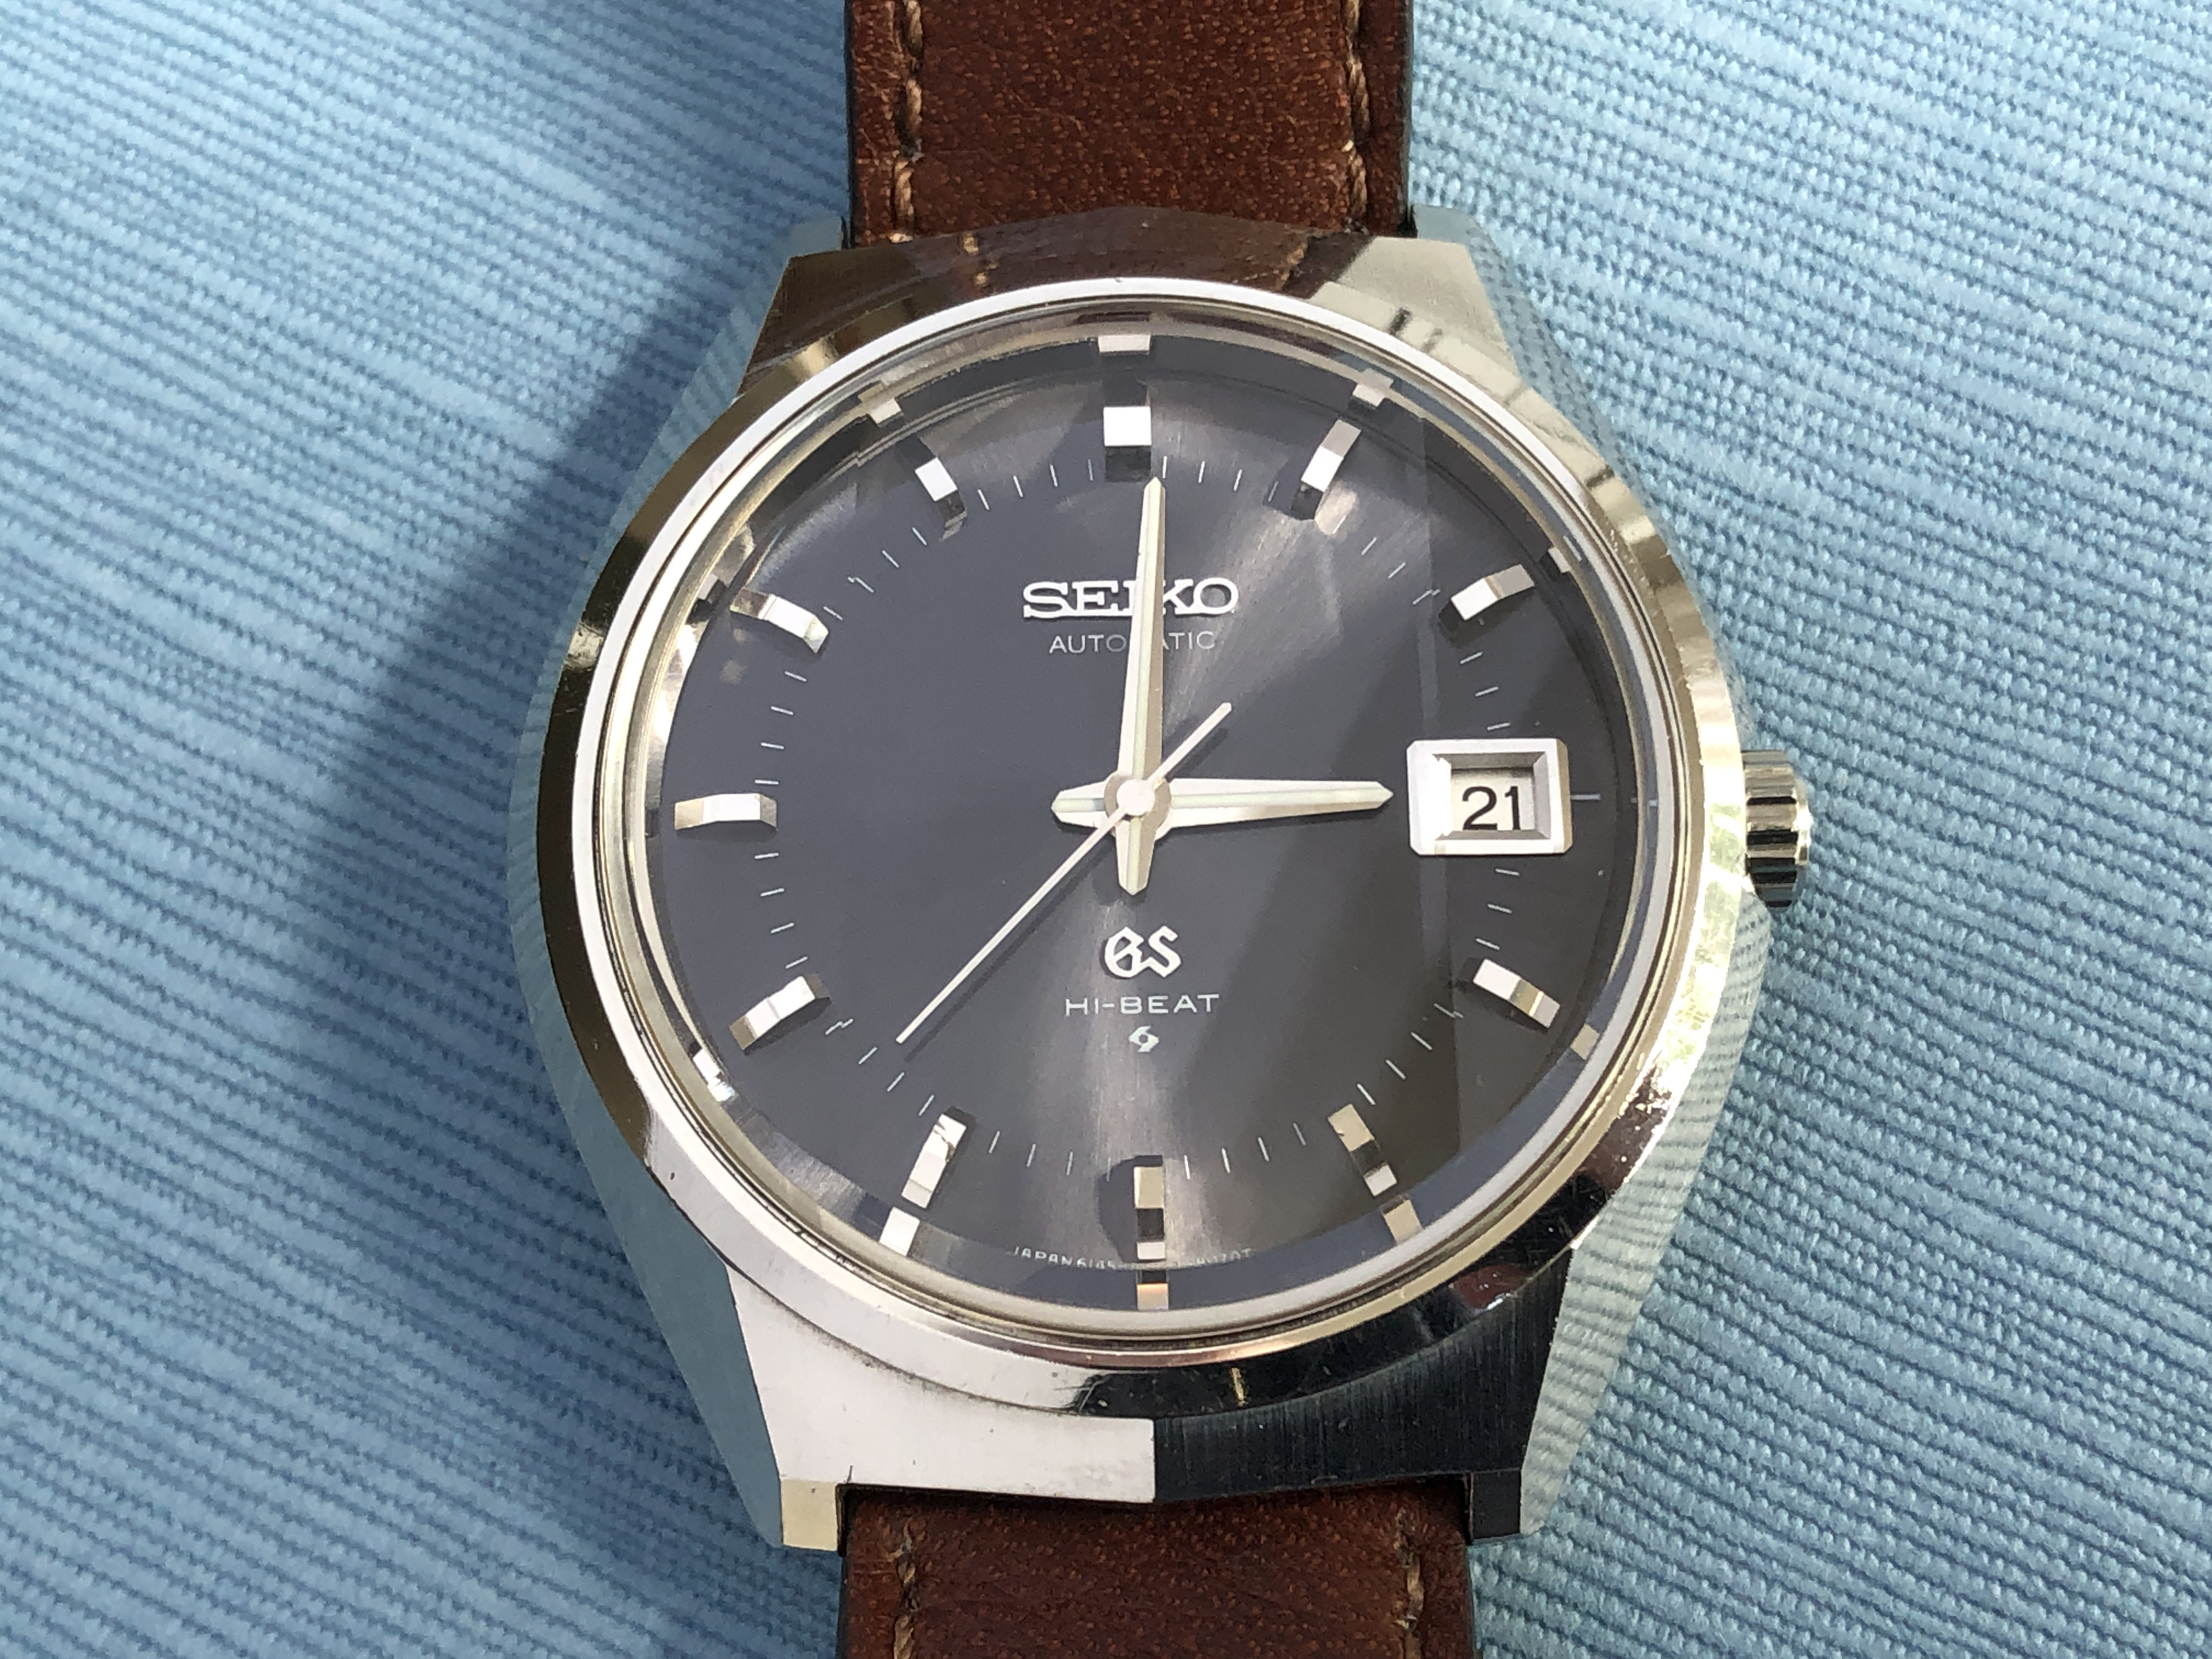 Grand Seiko 6145-8050 with GS buckle (For sale)